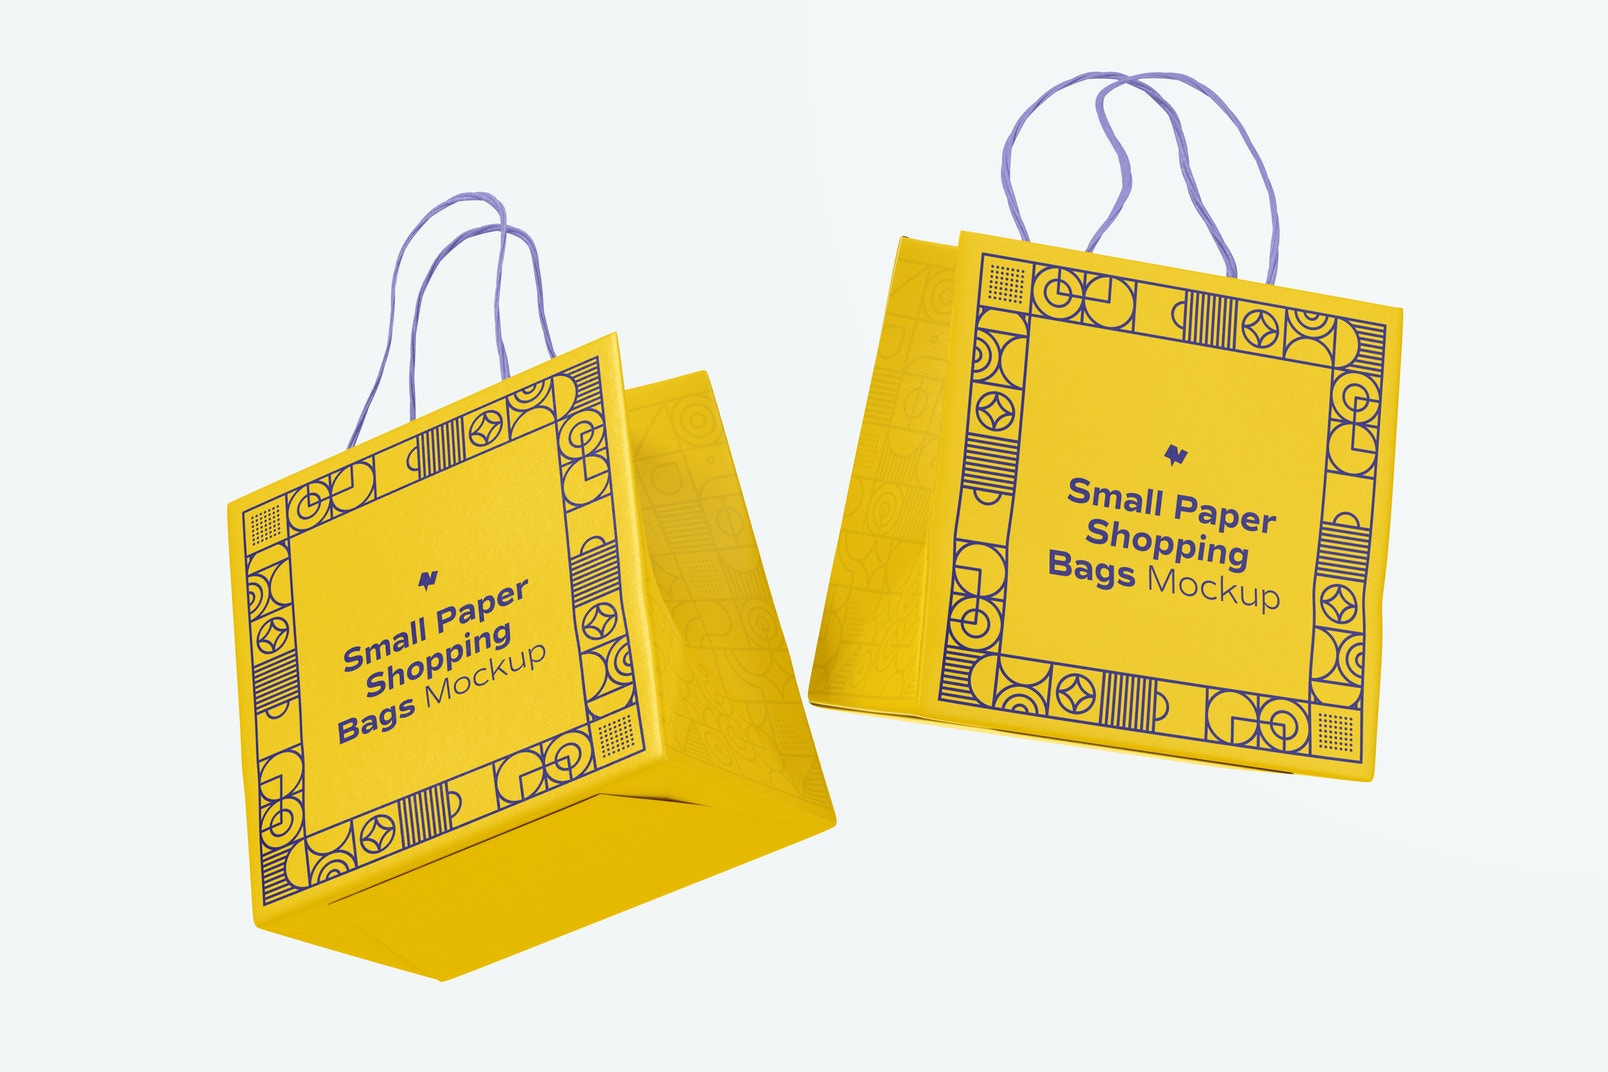 Small Paper Shopping Bags Mockup, Floating